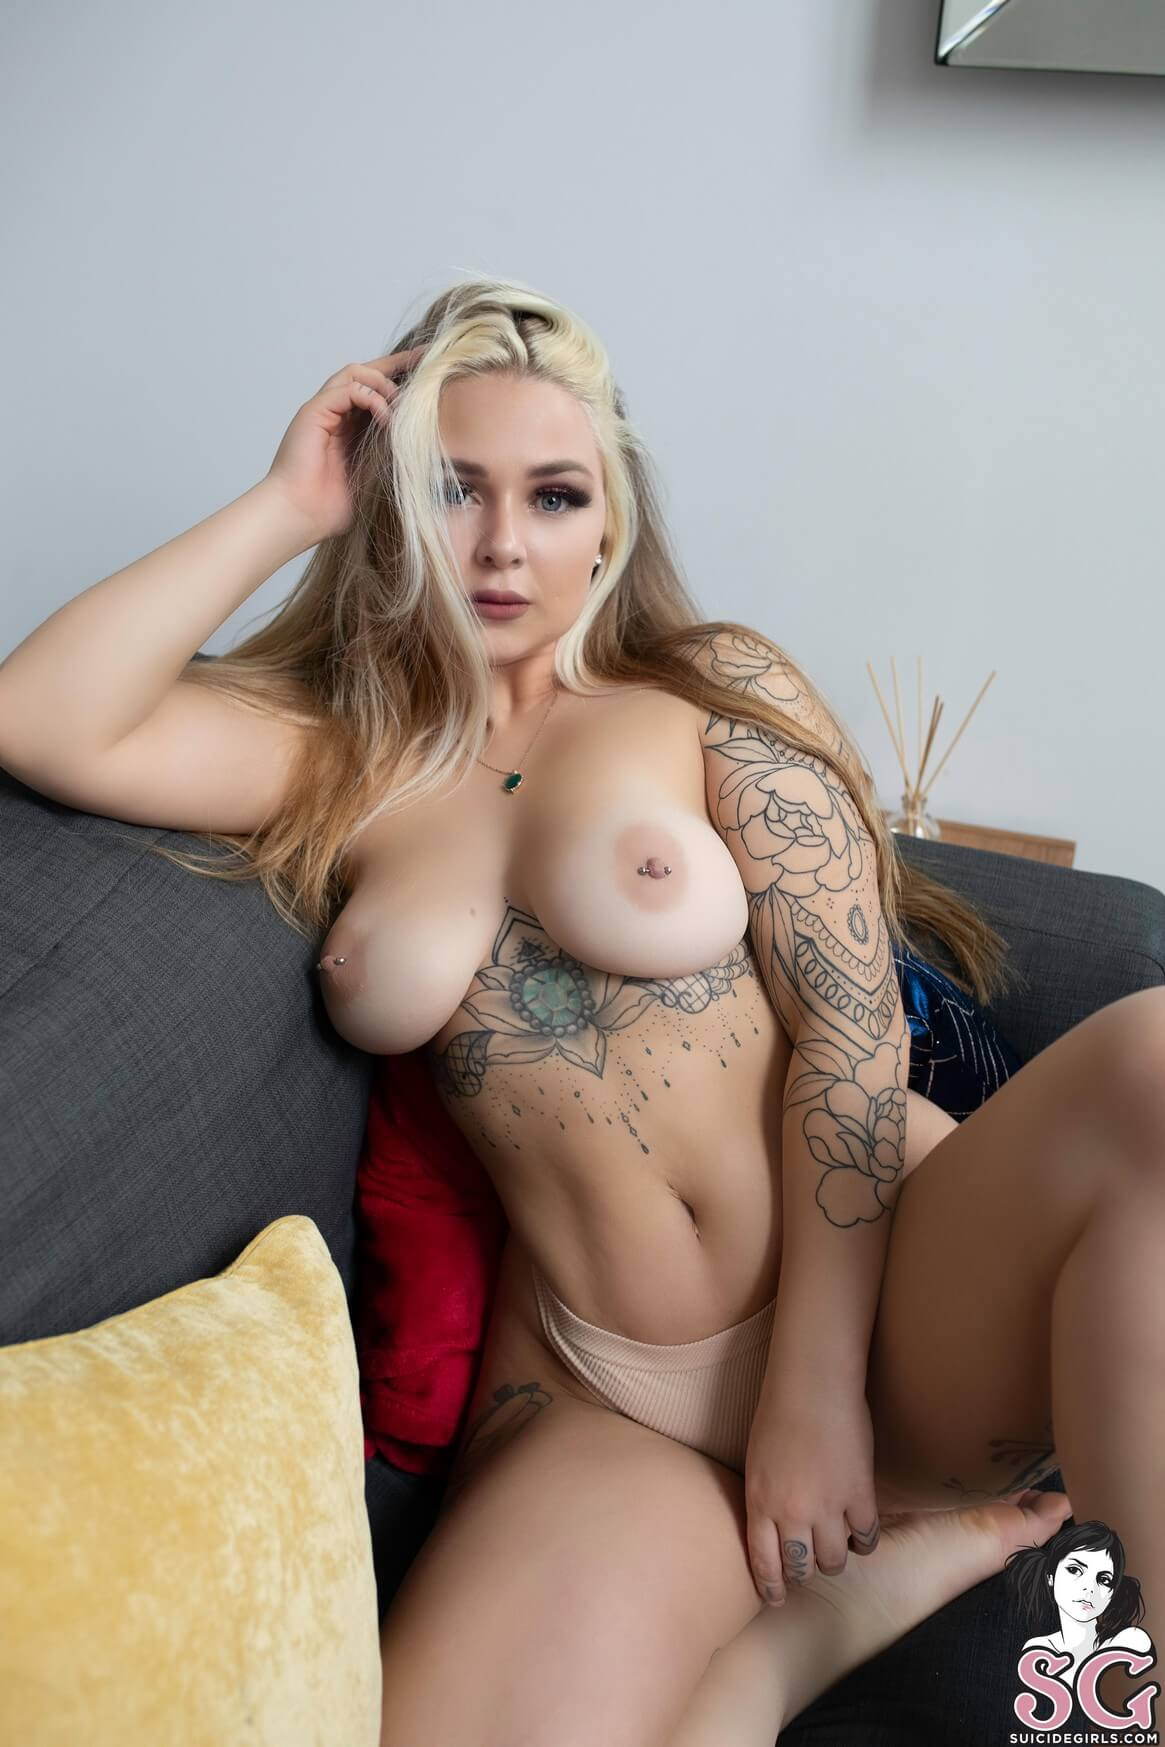 And busty nude Busty Sexy